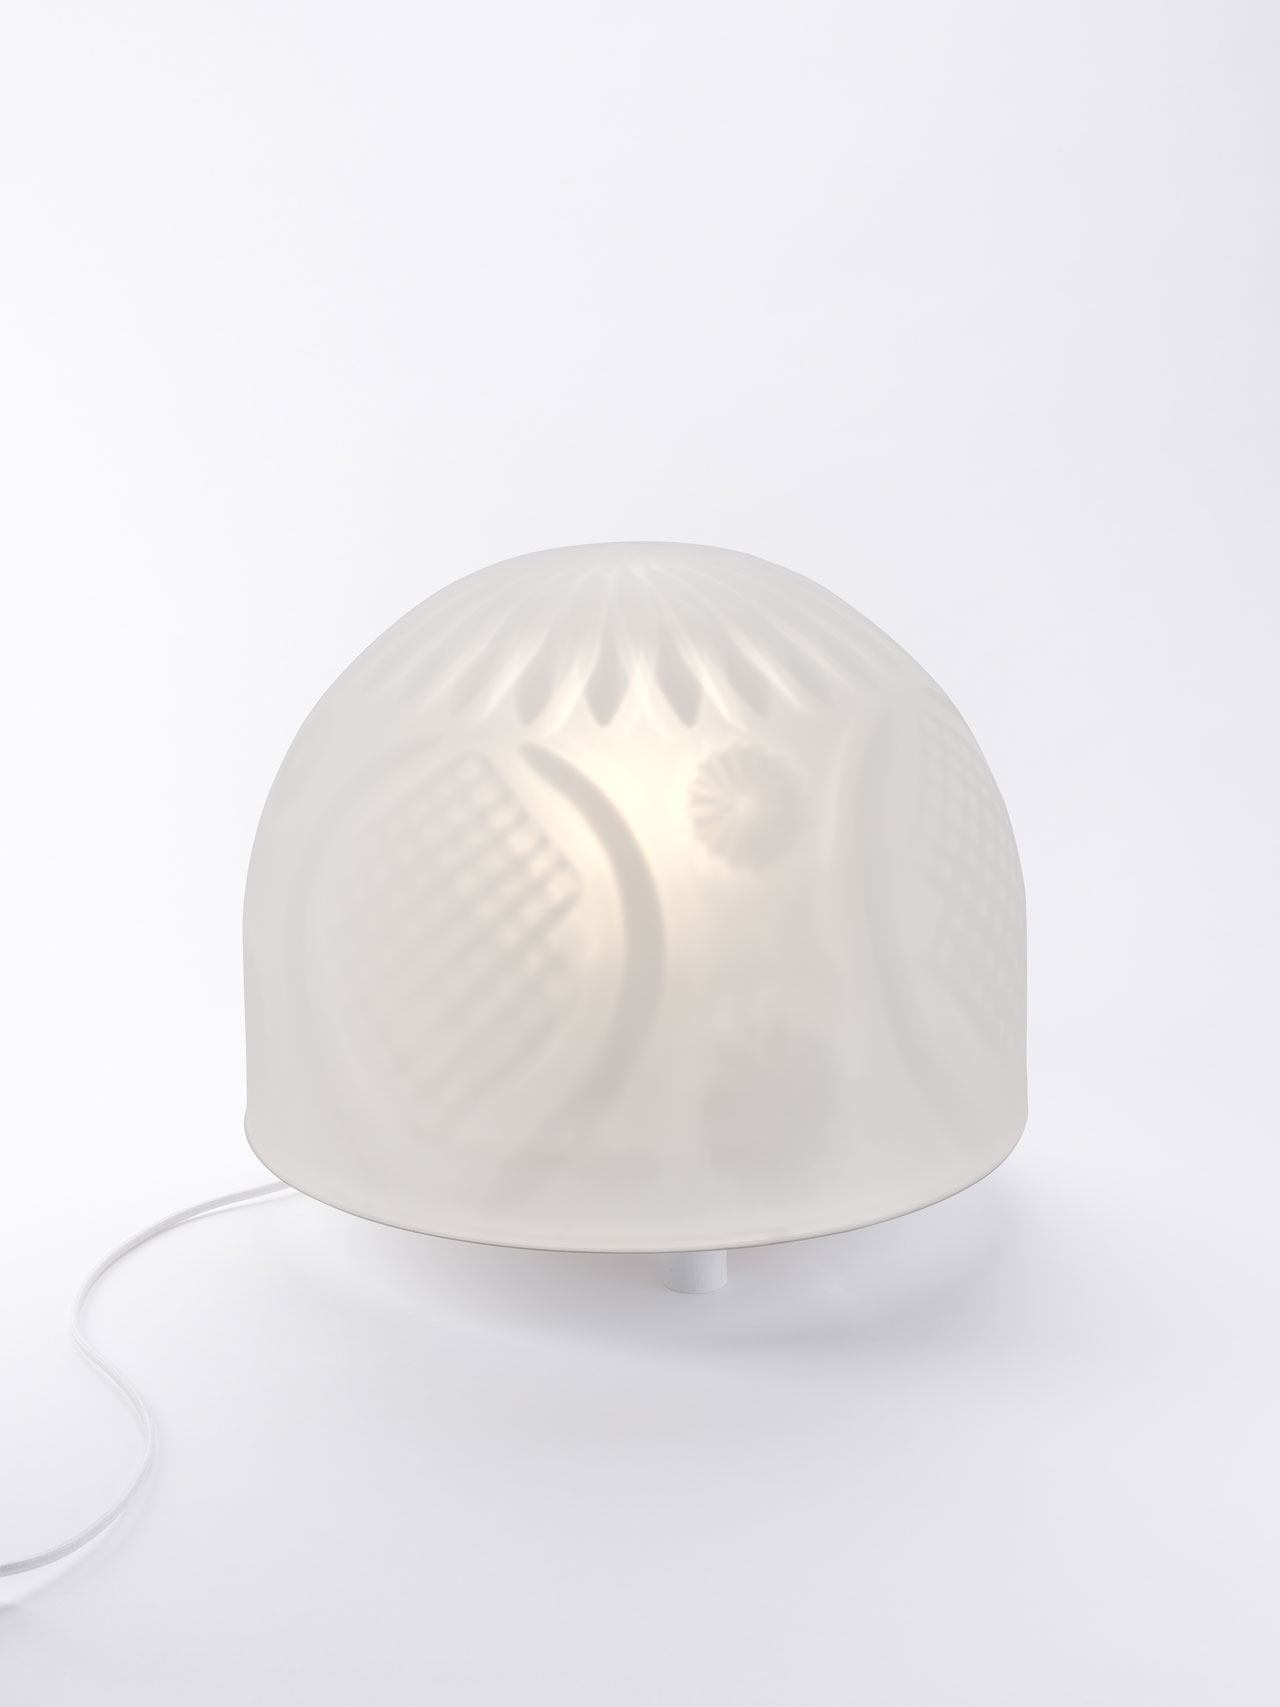 New table lamps by Nathalie Dewez for Val Saint Lambert.